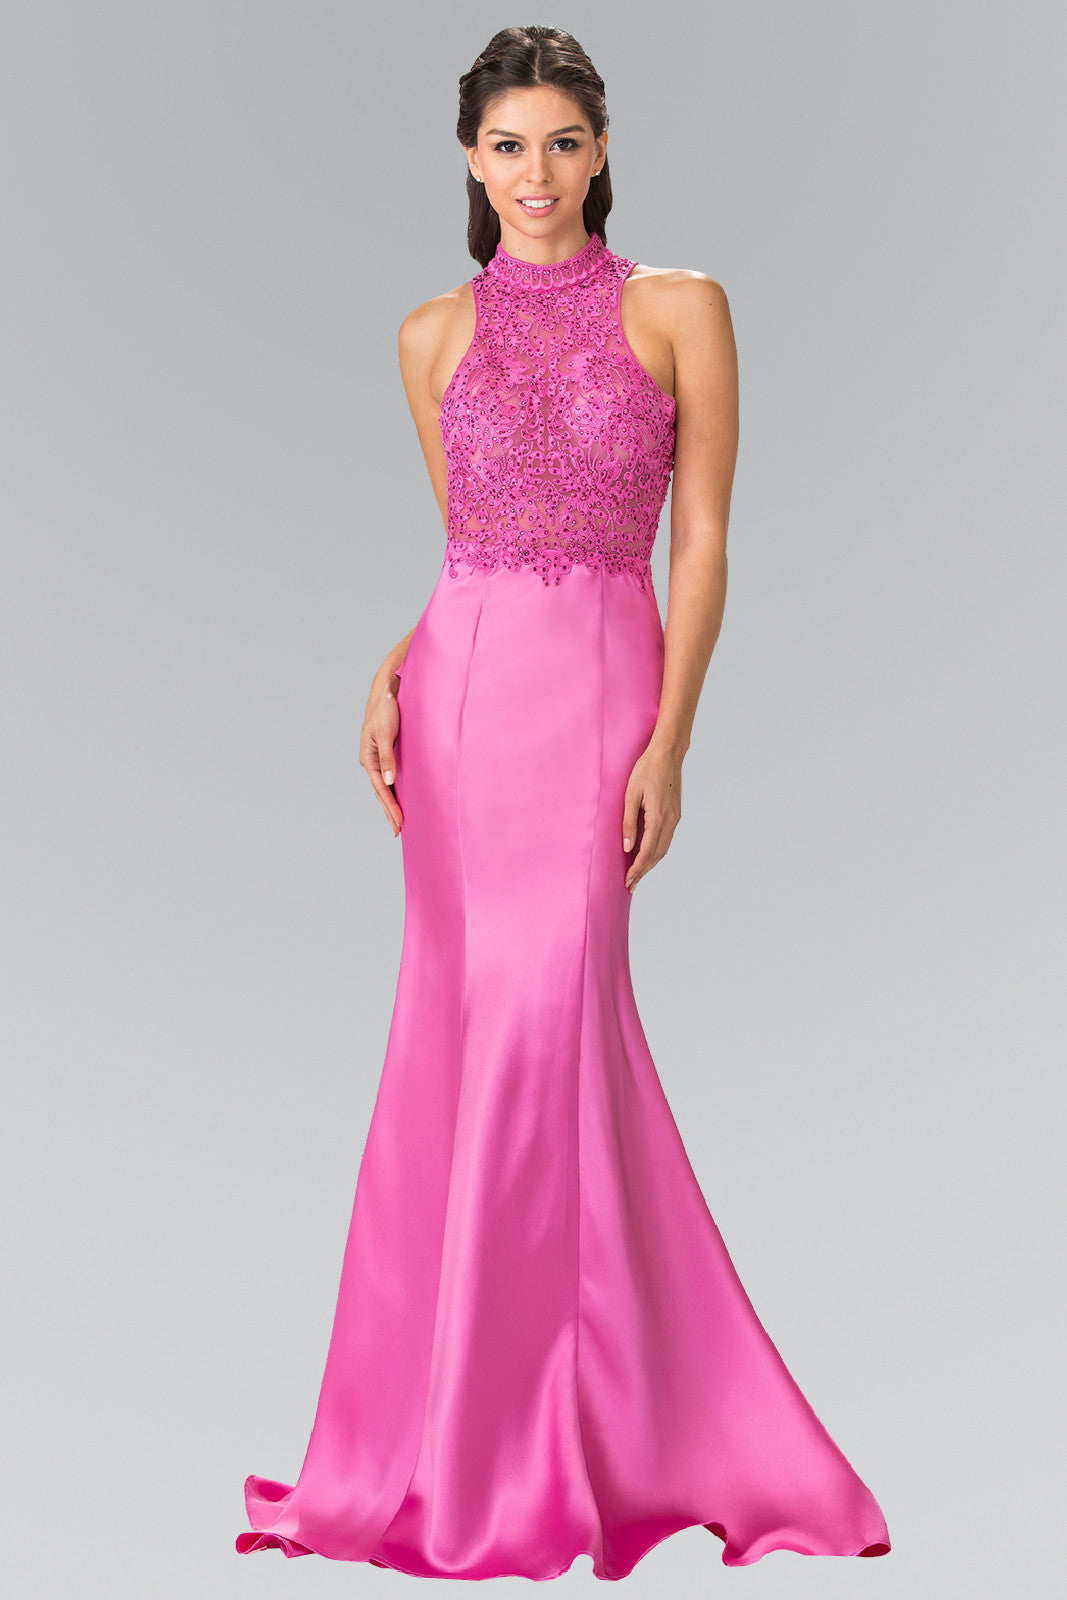 Pink high neck prom dress with ruffles – Simply Fab Dress